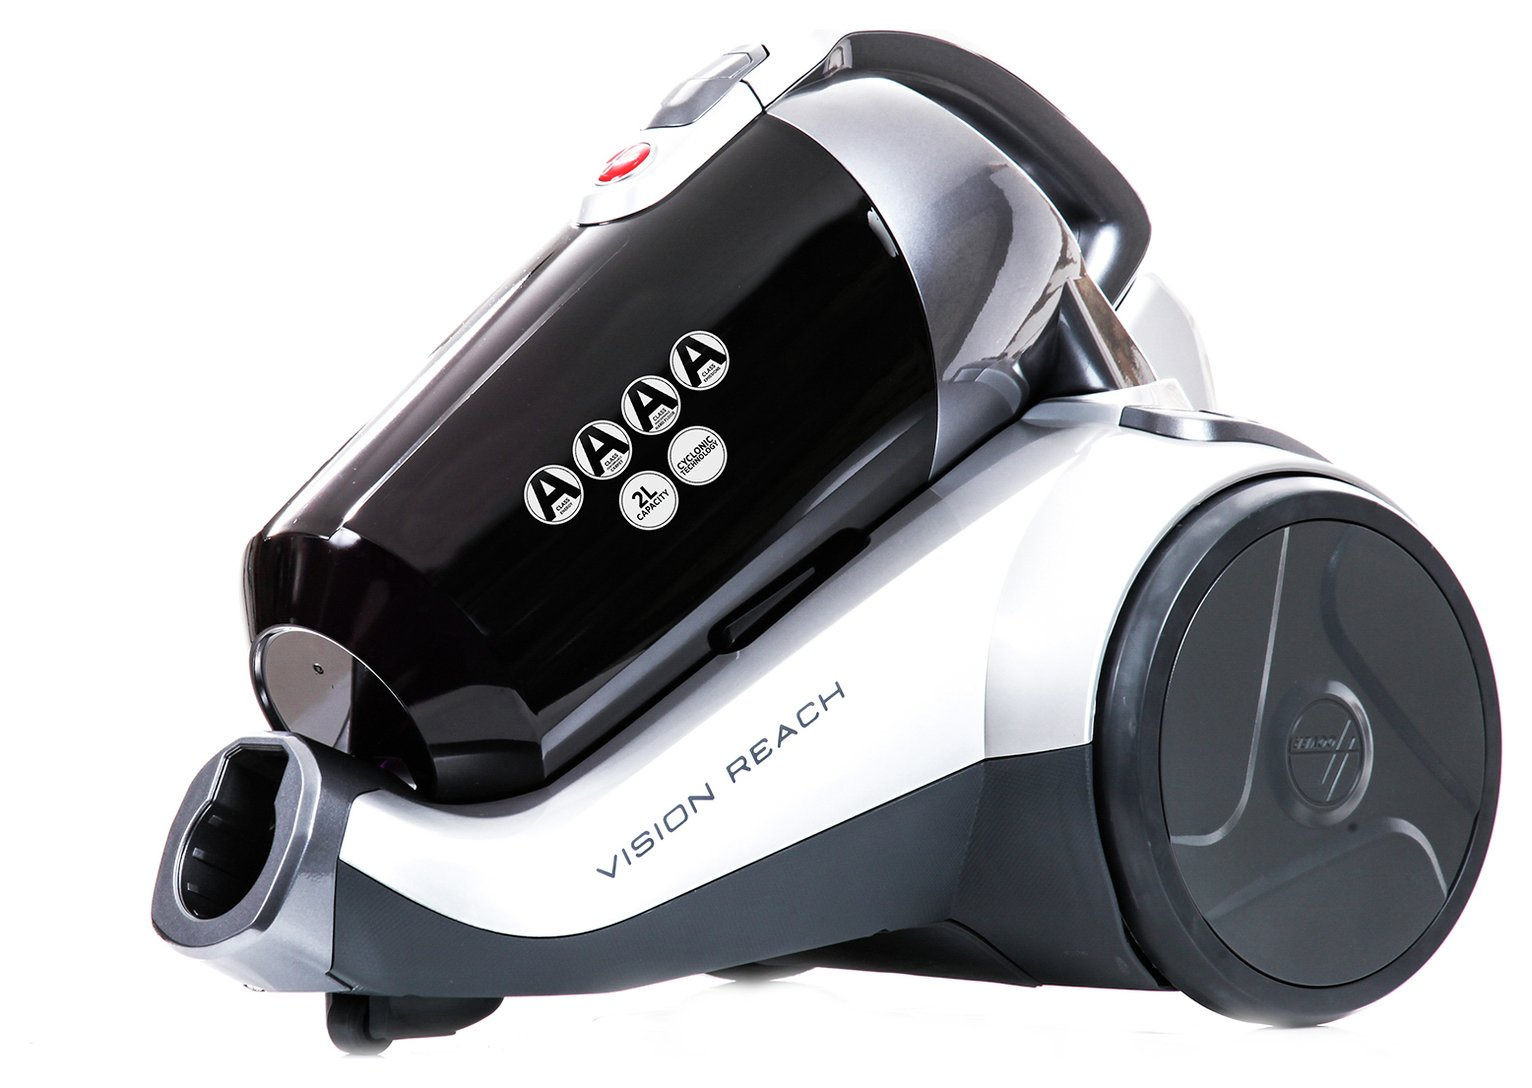 Image of Hoover - BF81VS02 Vision Reach Bagless Cylinder Vacuum Cleaner